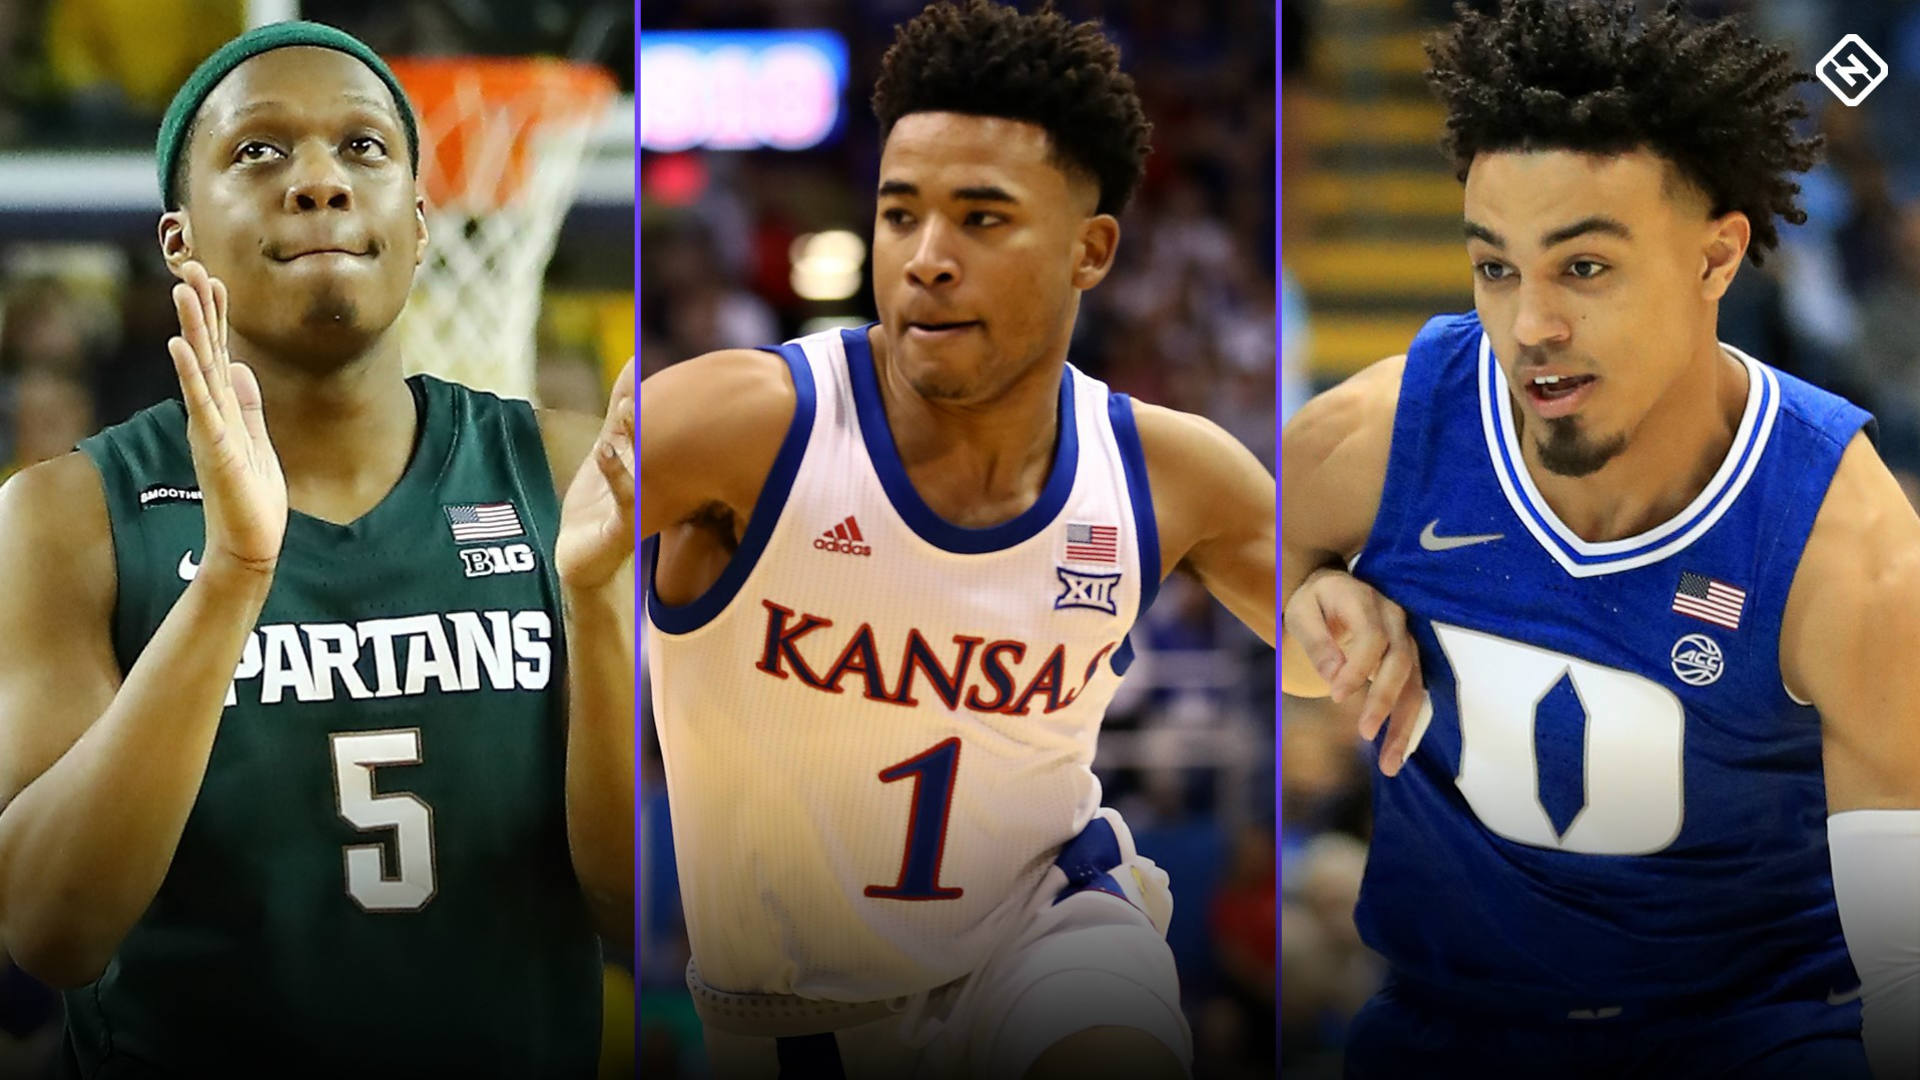 March Madness 2020: Predicting NCAA Tournament risers and fallers among top 16 seeds in bracket preview